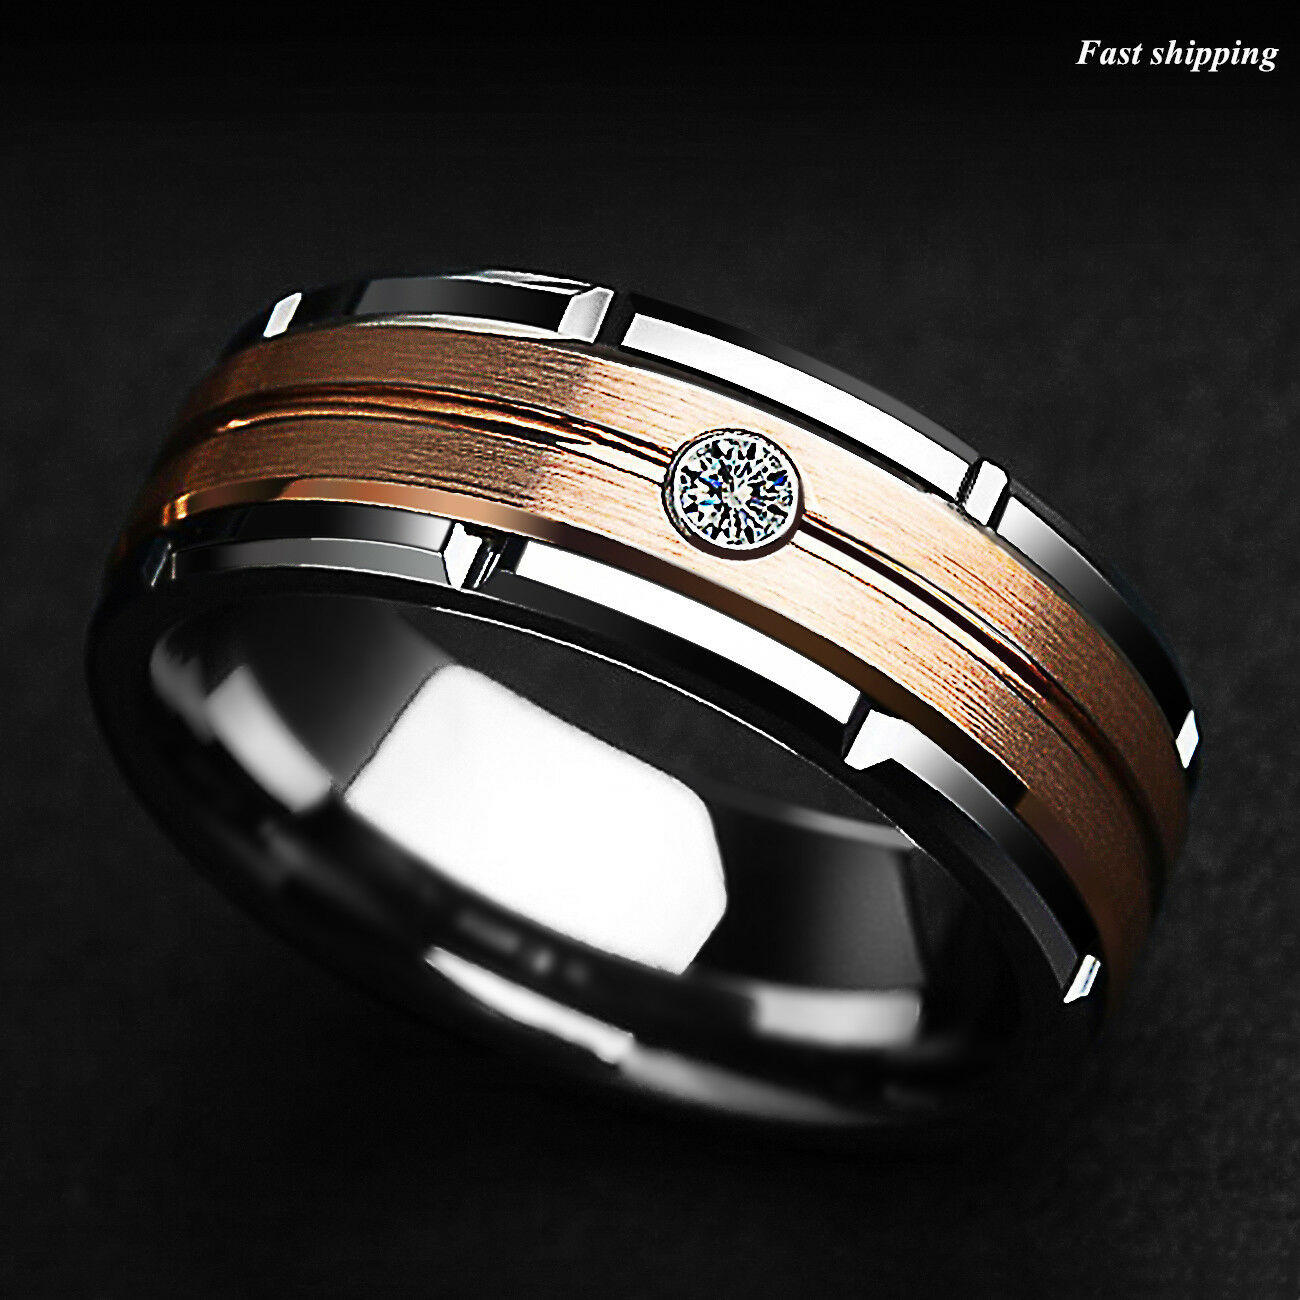 Mens Rose Gold Wedding Band.Details About 8mm Silver Tungsten Ring Rose Gold Brushed Diamond Atop Luxury Men Wedding Band